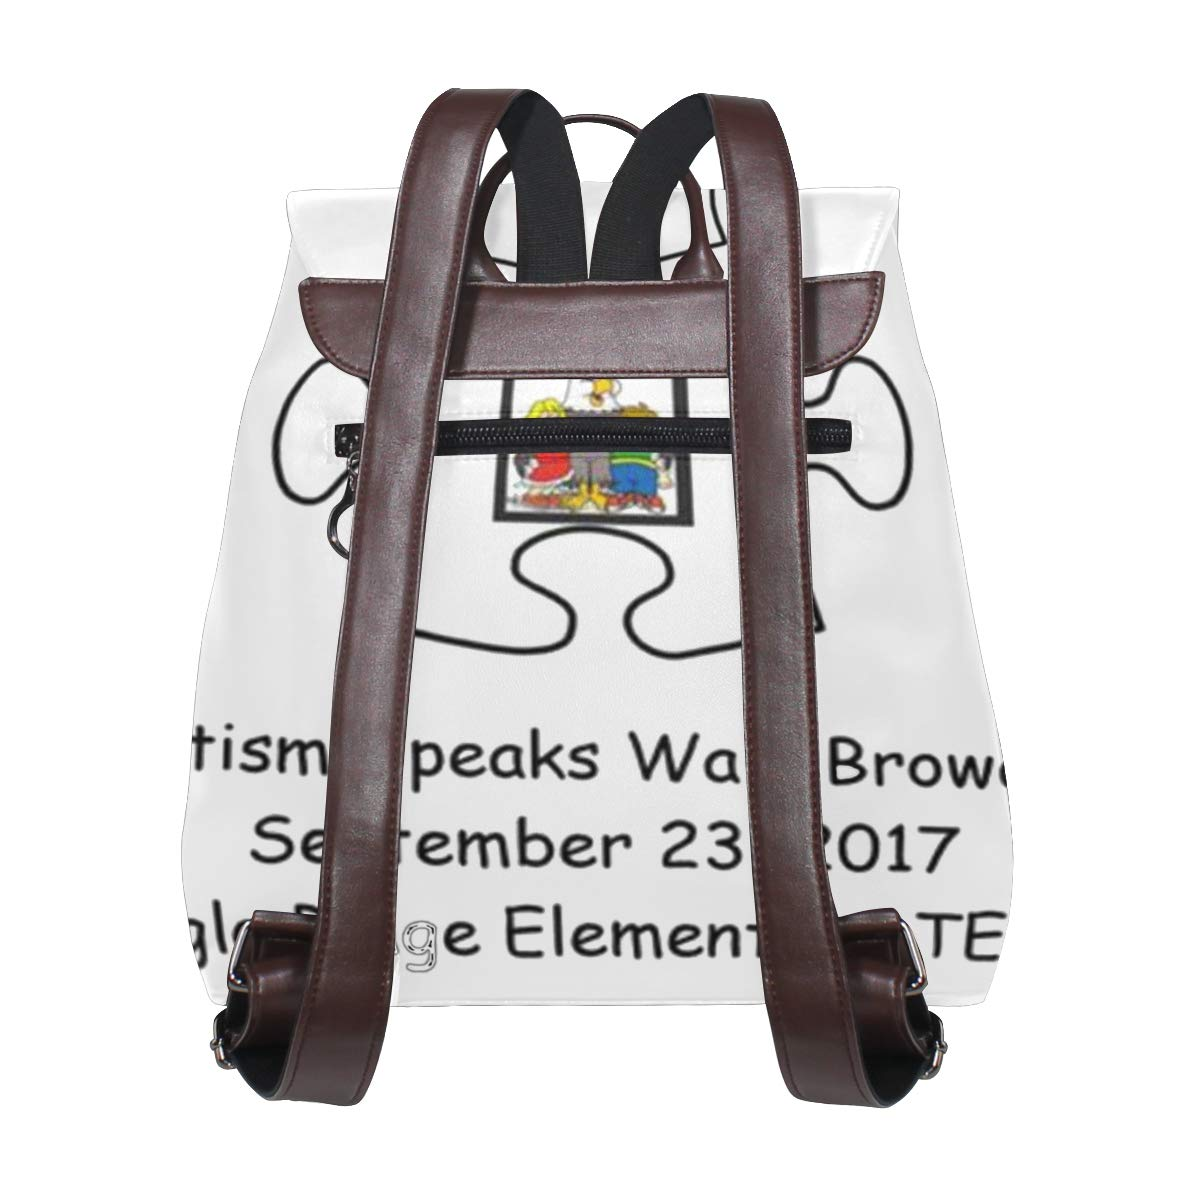 Leather fashion Autism Speaks Walk Broward backpack For Work//Travel//Leisure//school bag